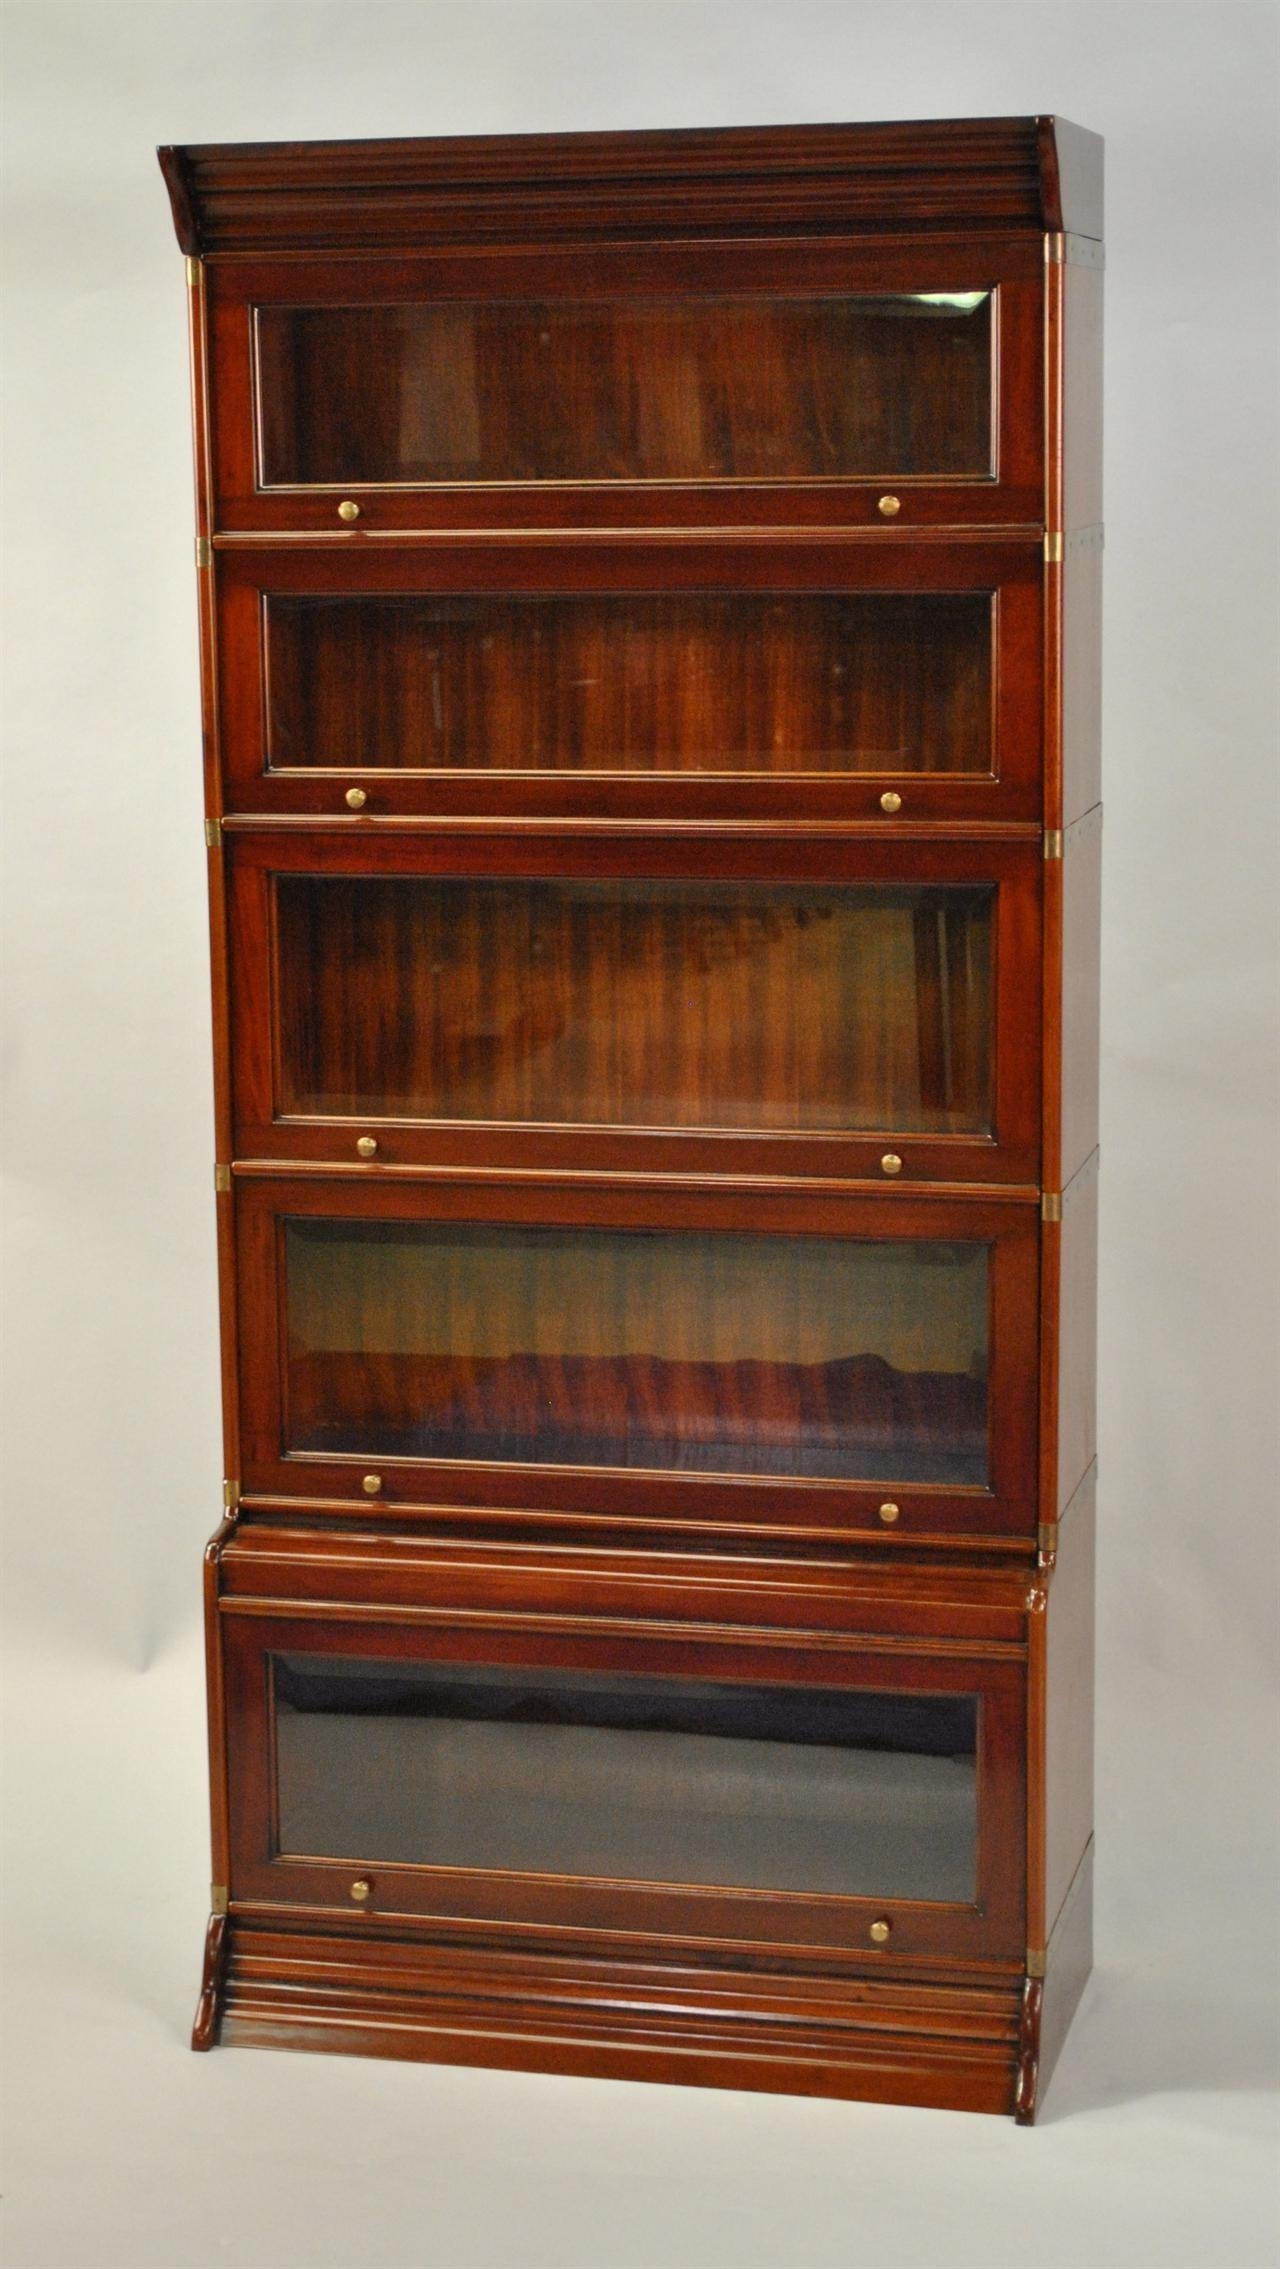 Lawyer Bookcases Intended For Best And Newest Reproduction Globe Wernicke Stacking Barrister Bookcase (View 10 of 15)